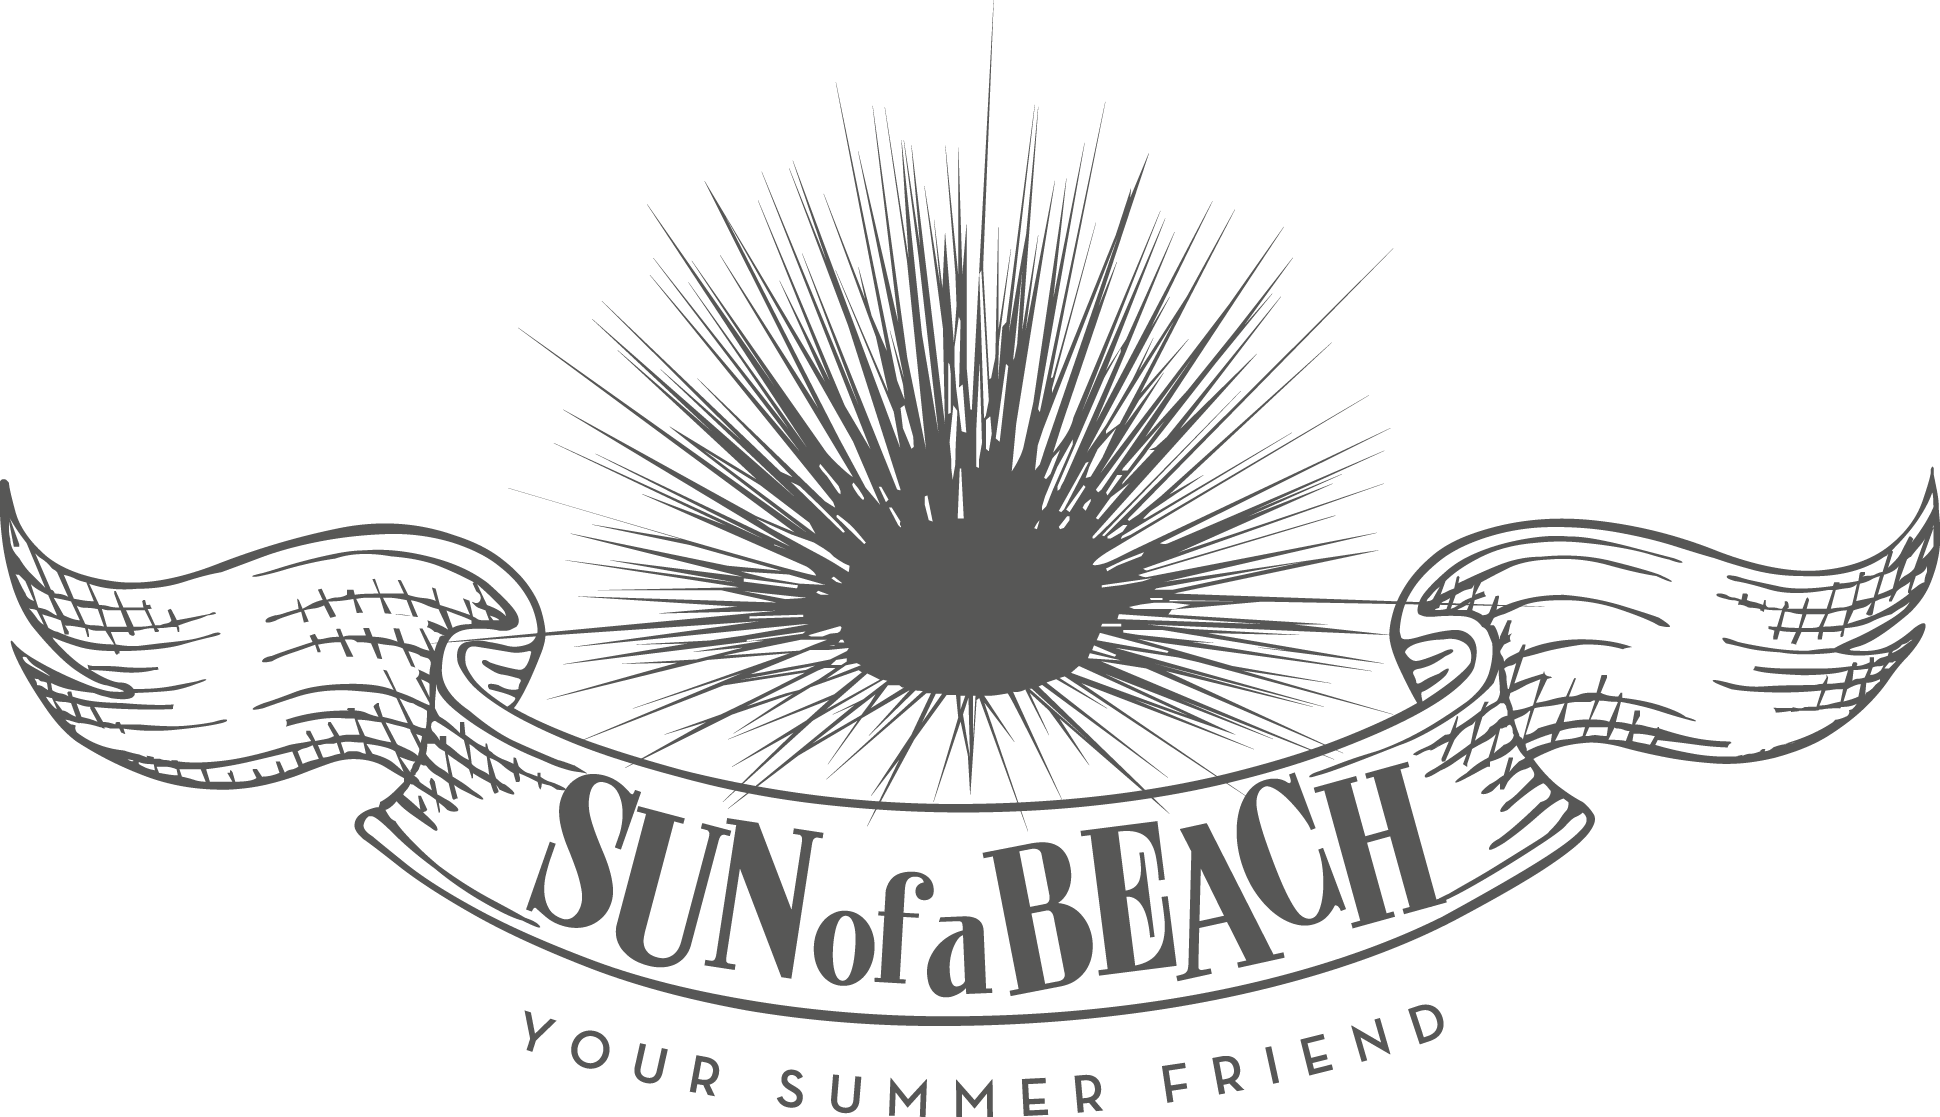 Read Sun of a Beach Reviews